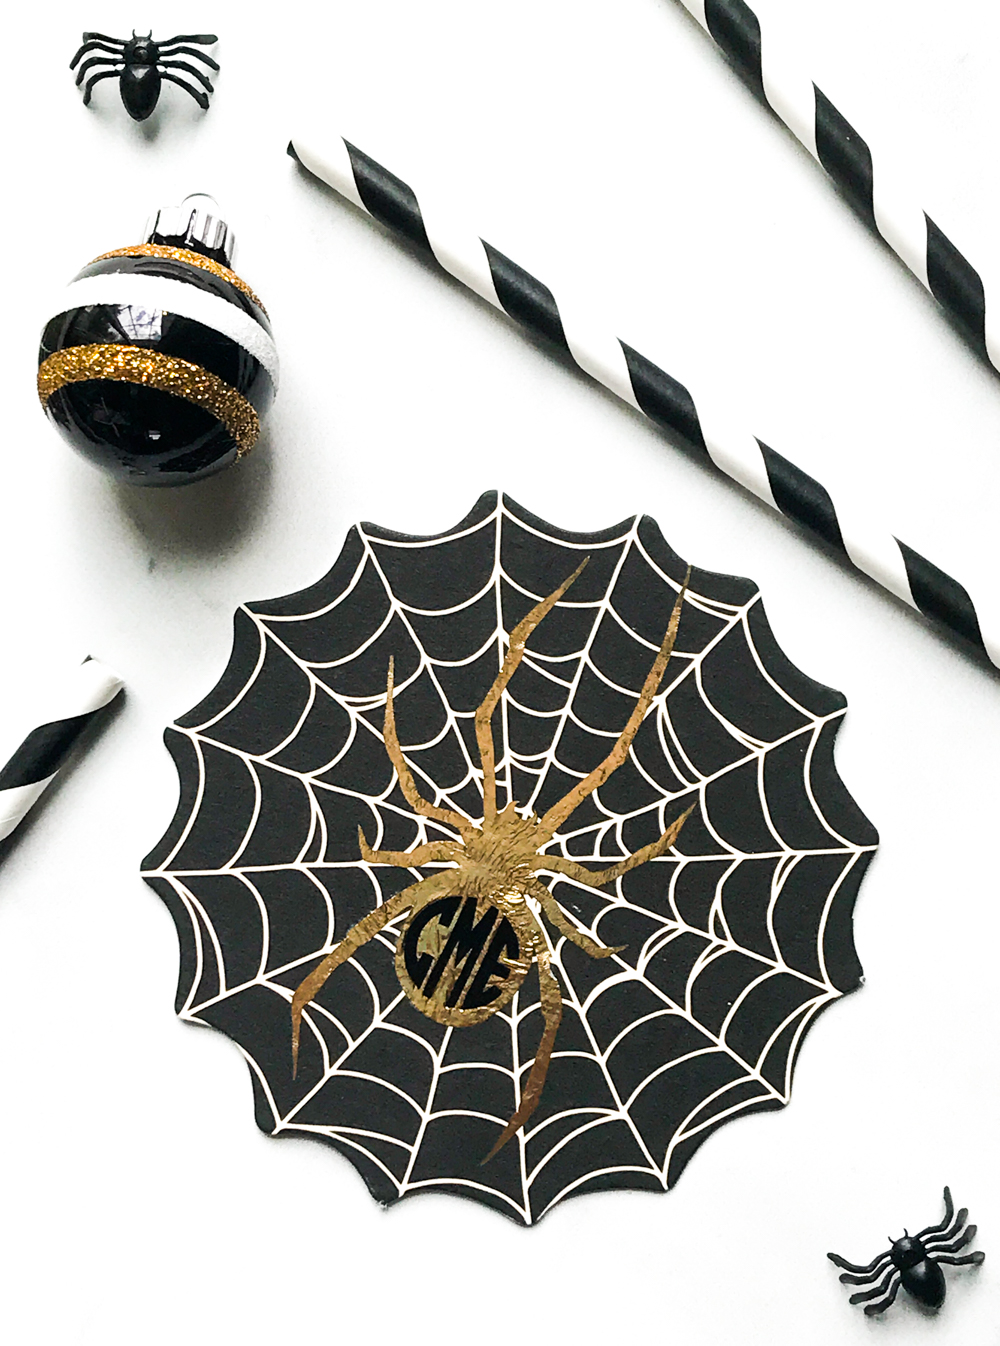 Gold Spider Coaster Halloween Decor